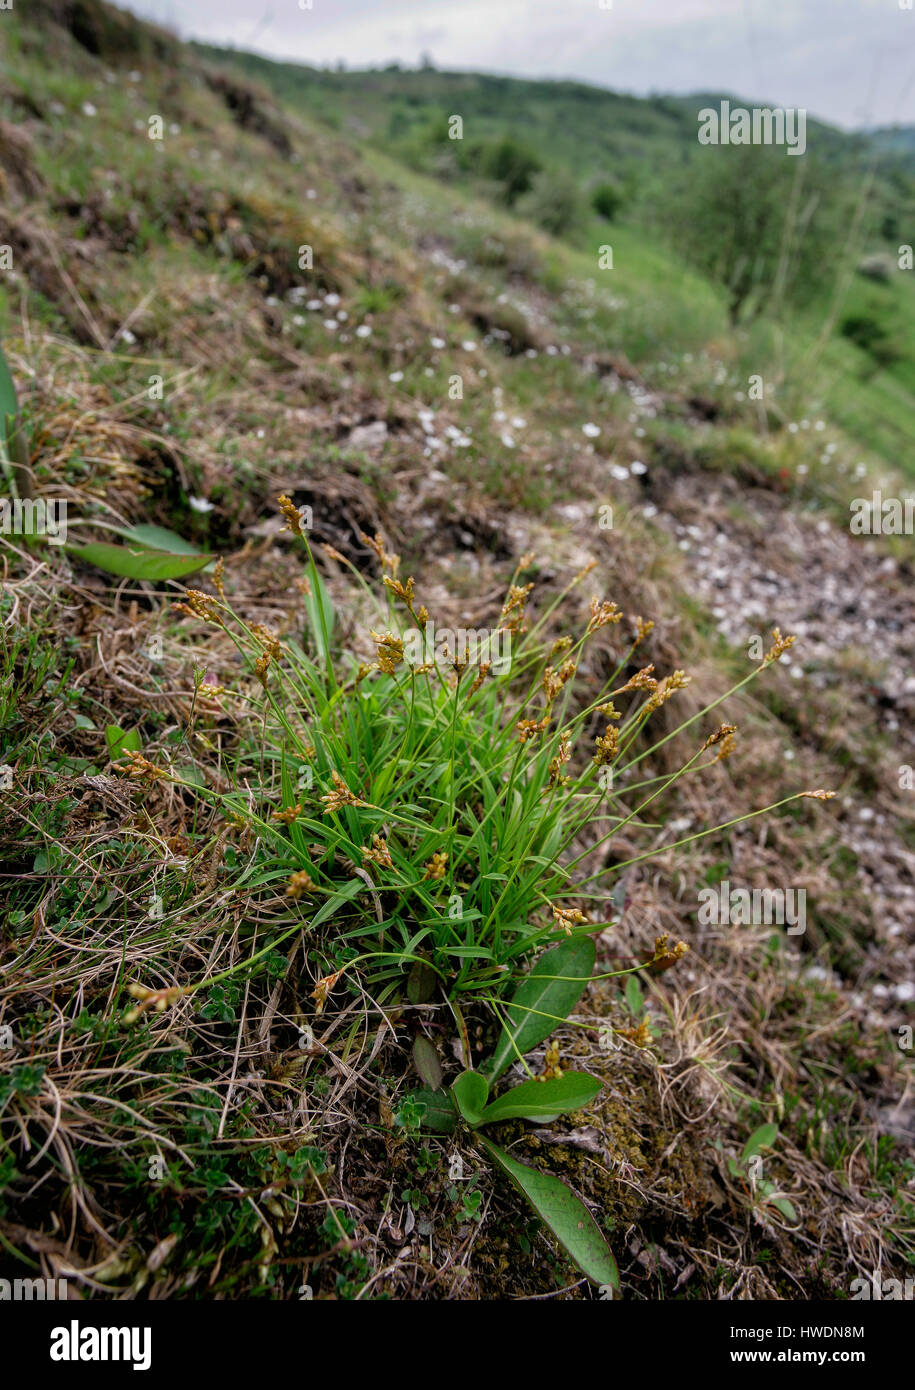 The rare bird's foot sedge Carex ornithopoda at Burfoot above Miller's Dale in the Derbyshire Peak District - Stock Image